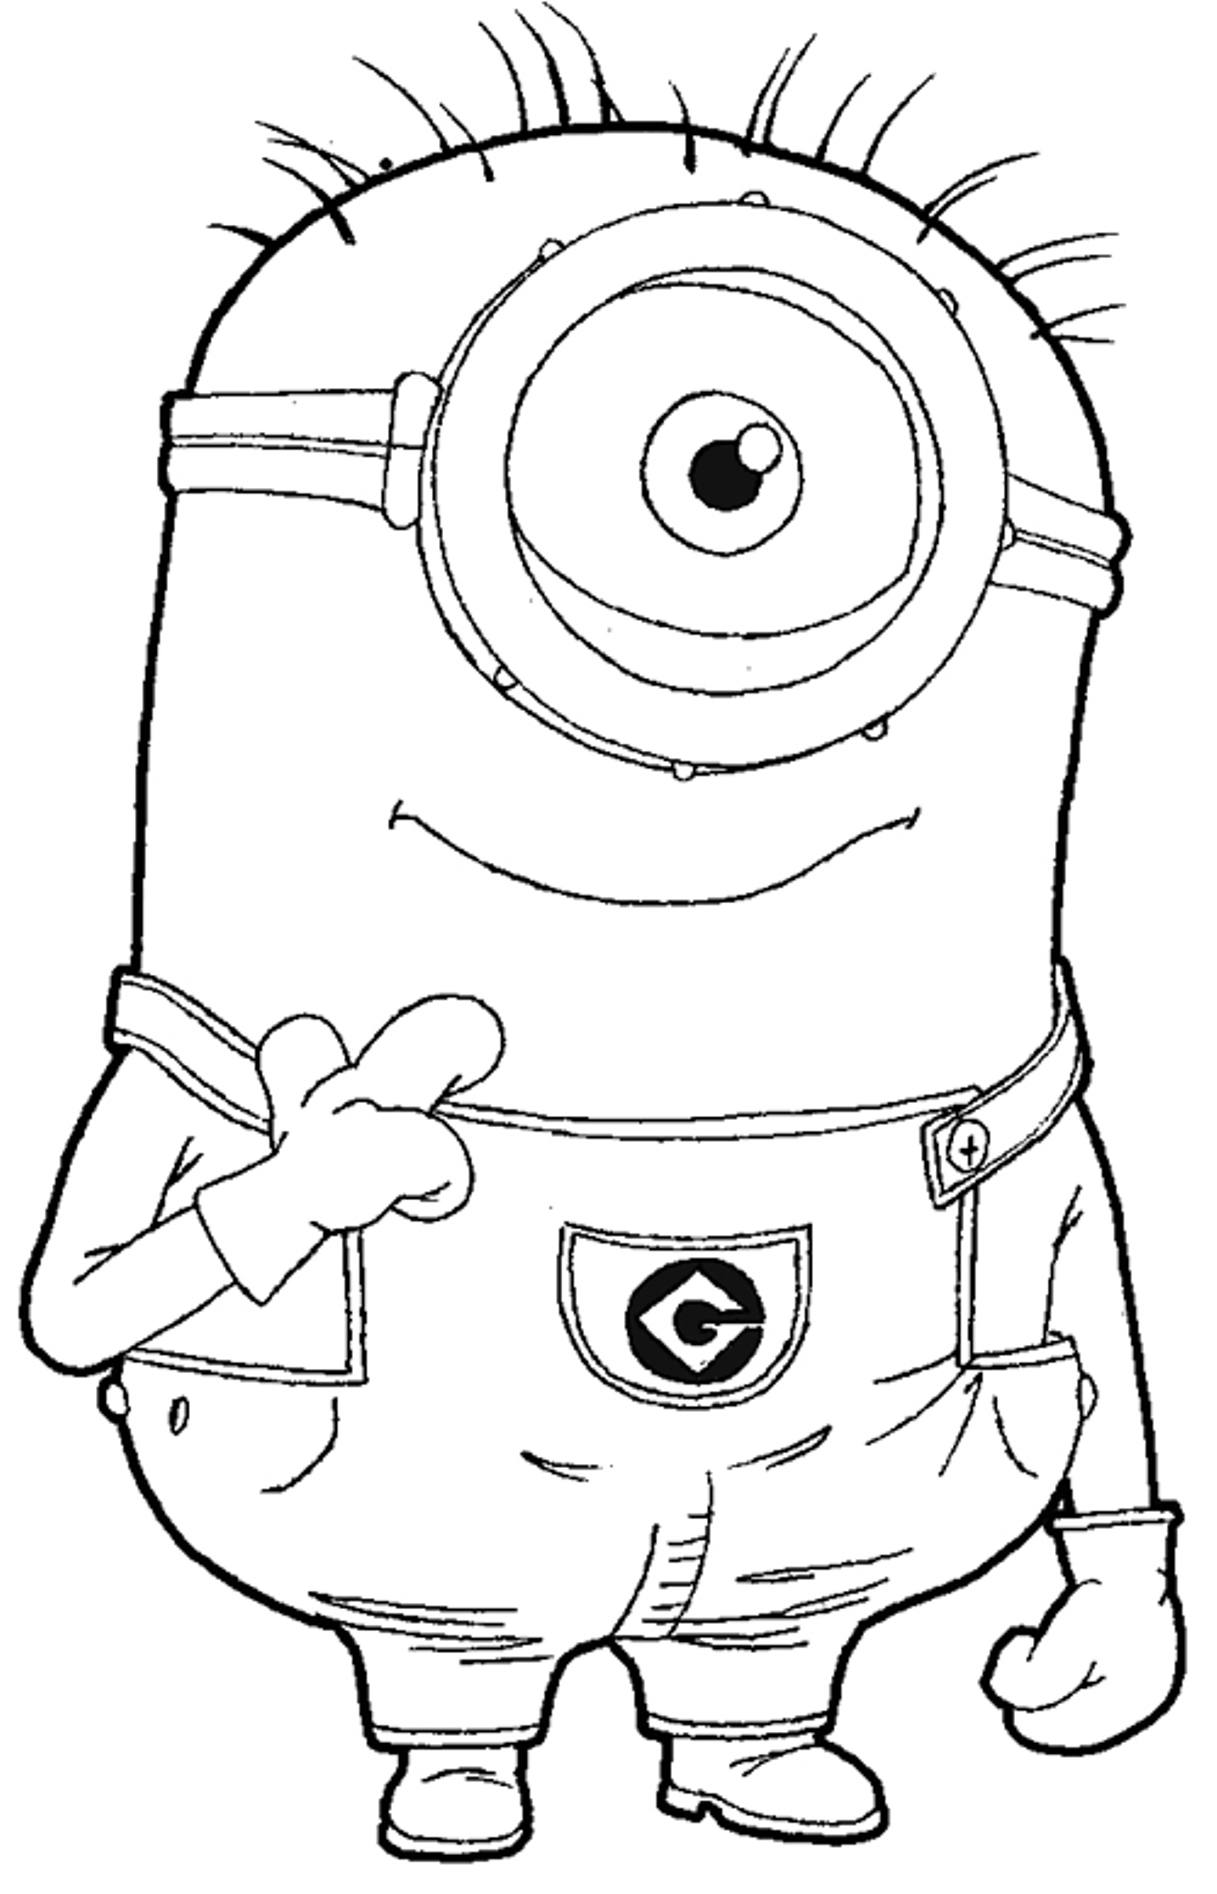 Minion coloring games for kids - Minions